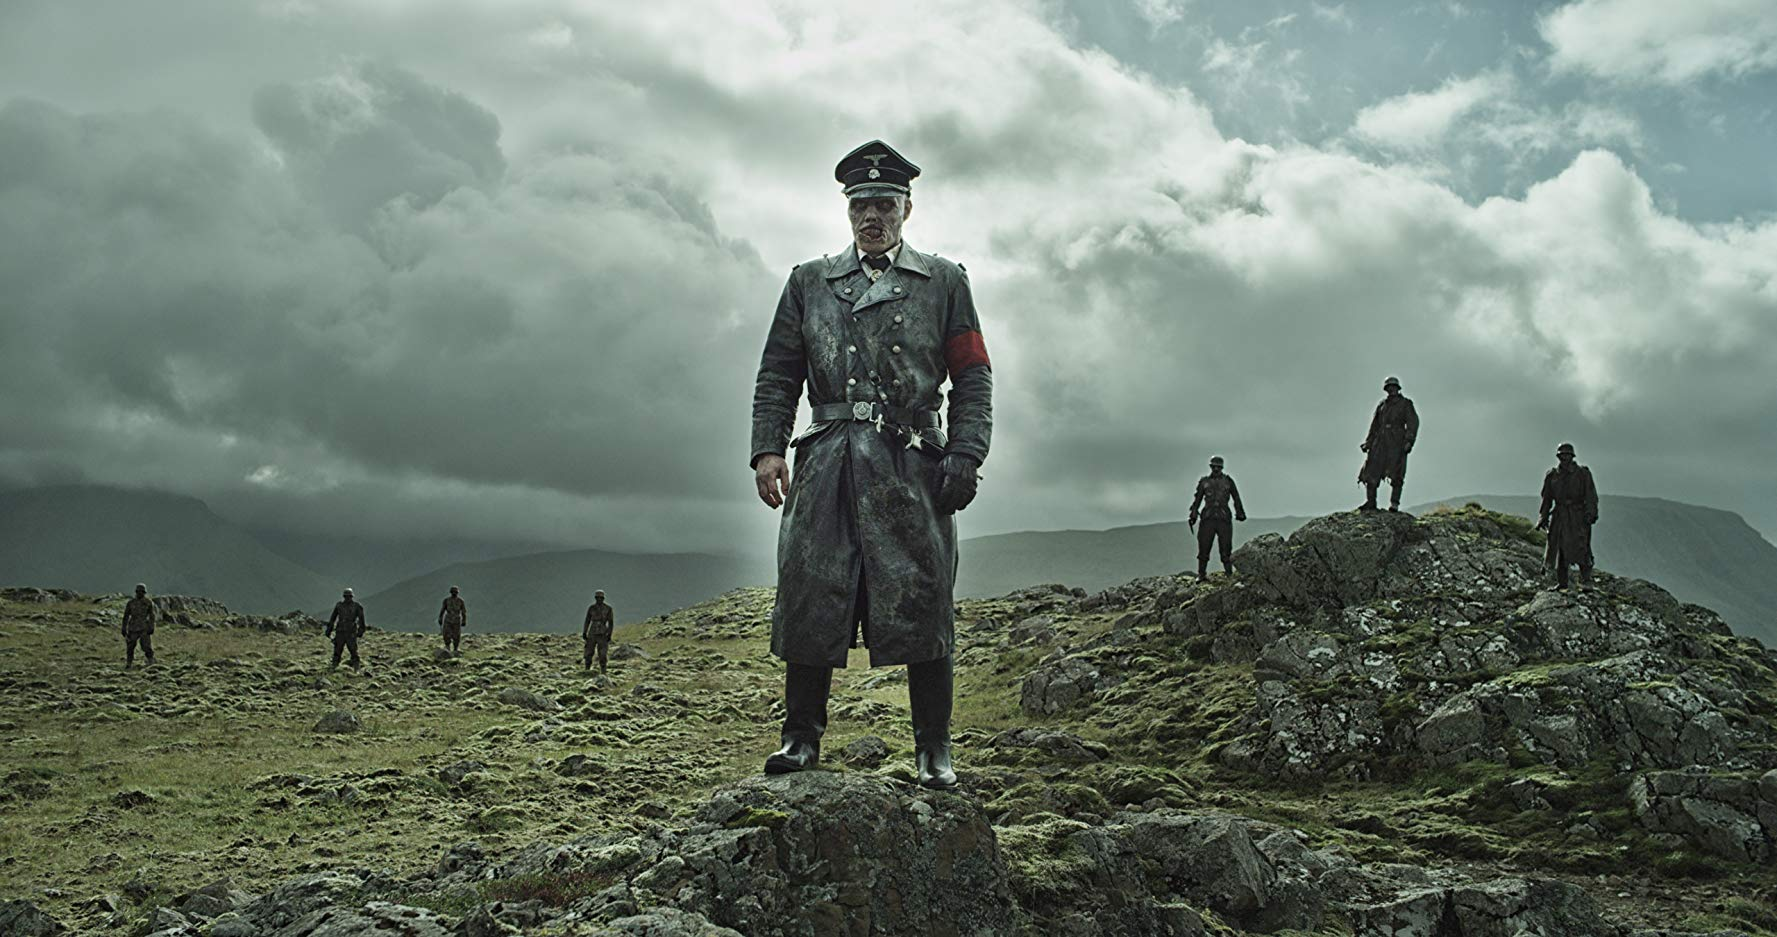 The return of the Nazi zombies in Dead Snow 2 (2014)